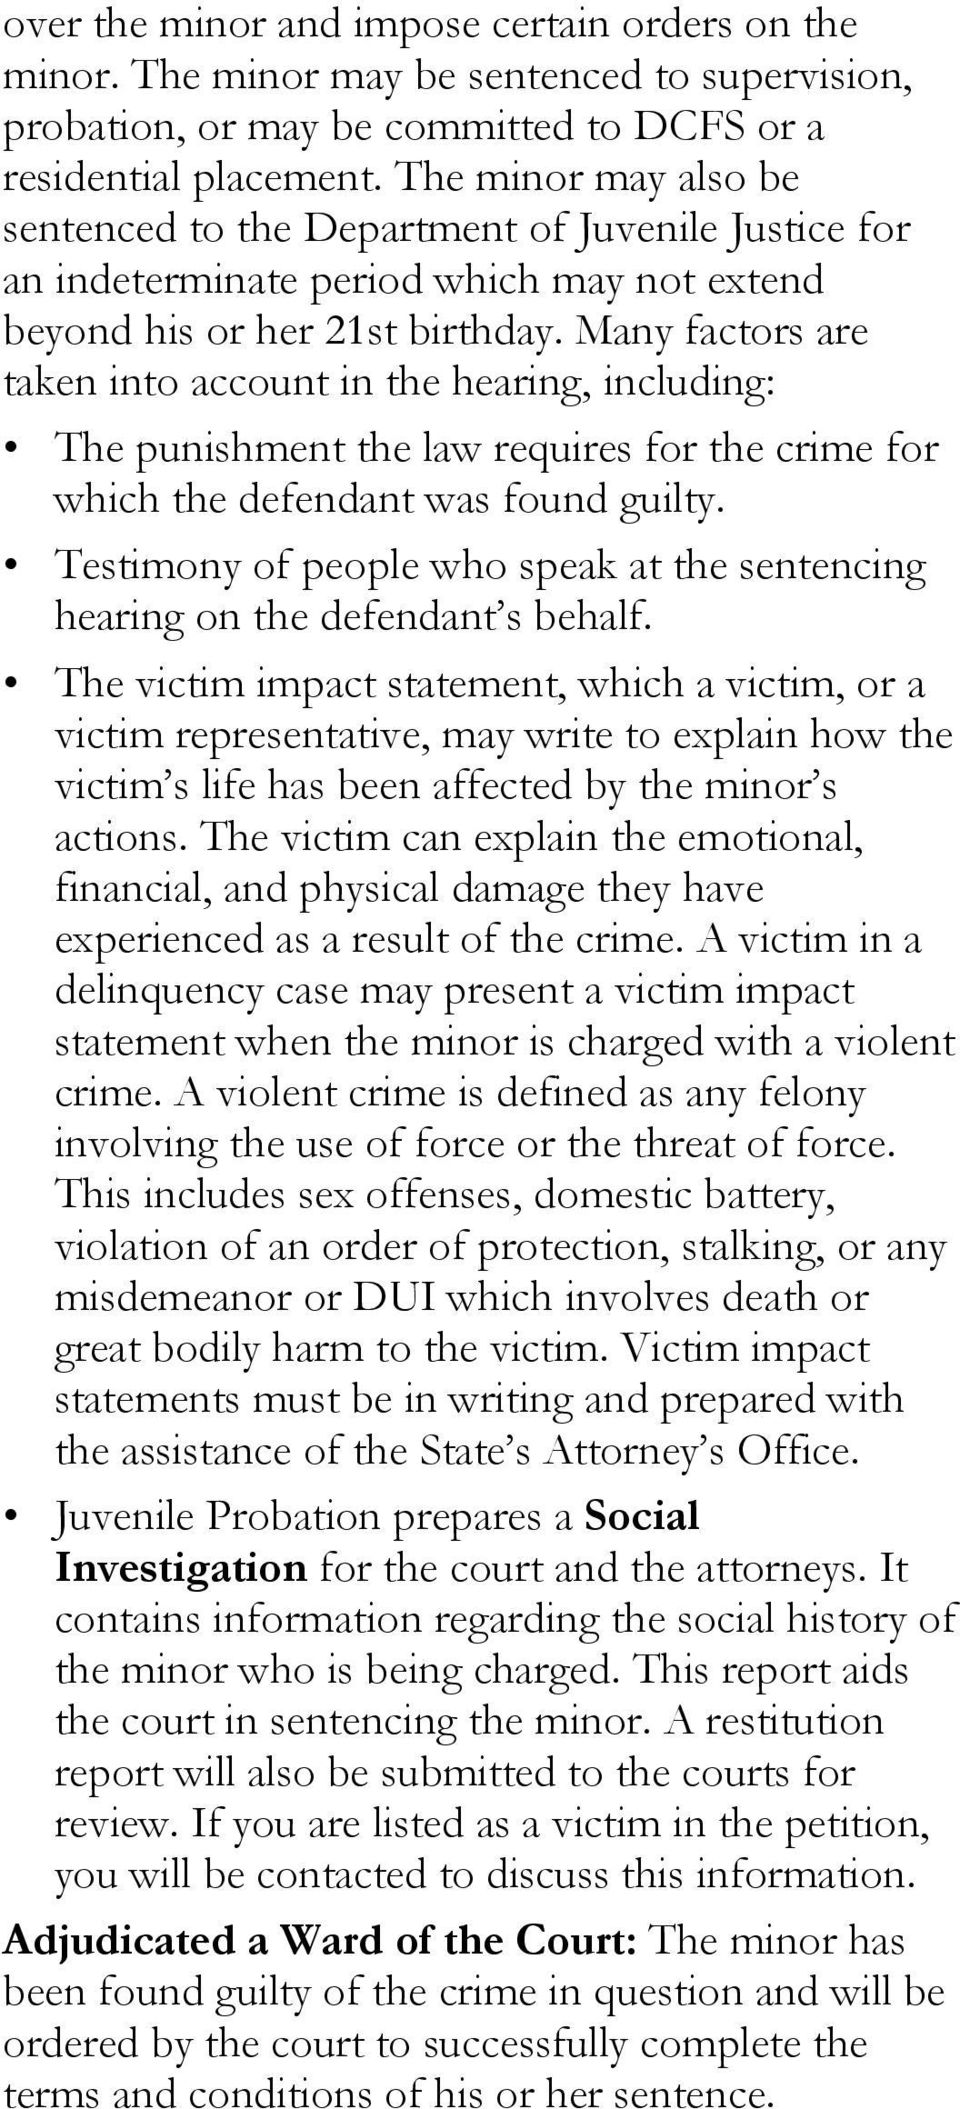 Many factors are taken into account in the hearing, including: The punishment the law requires for the crime for which the defendant was found guilty.